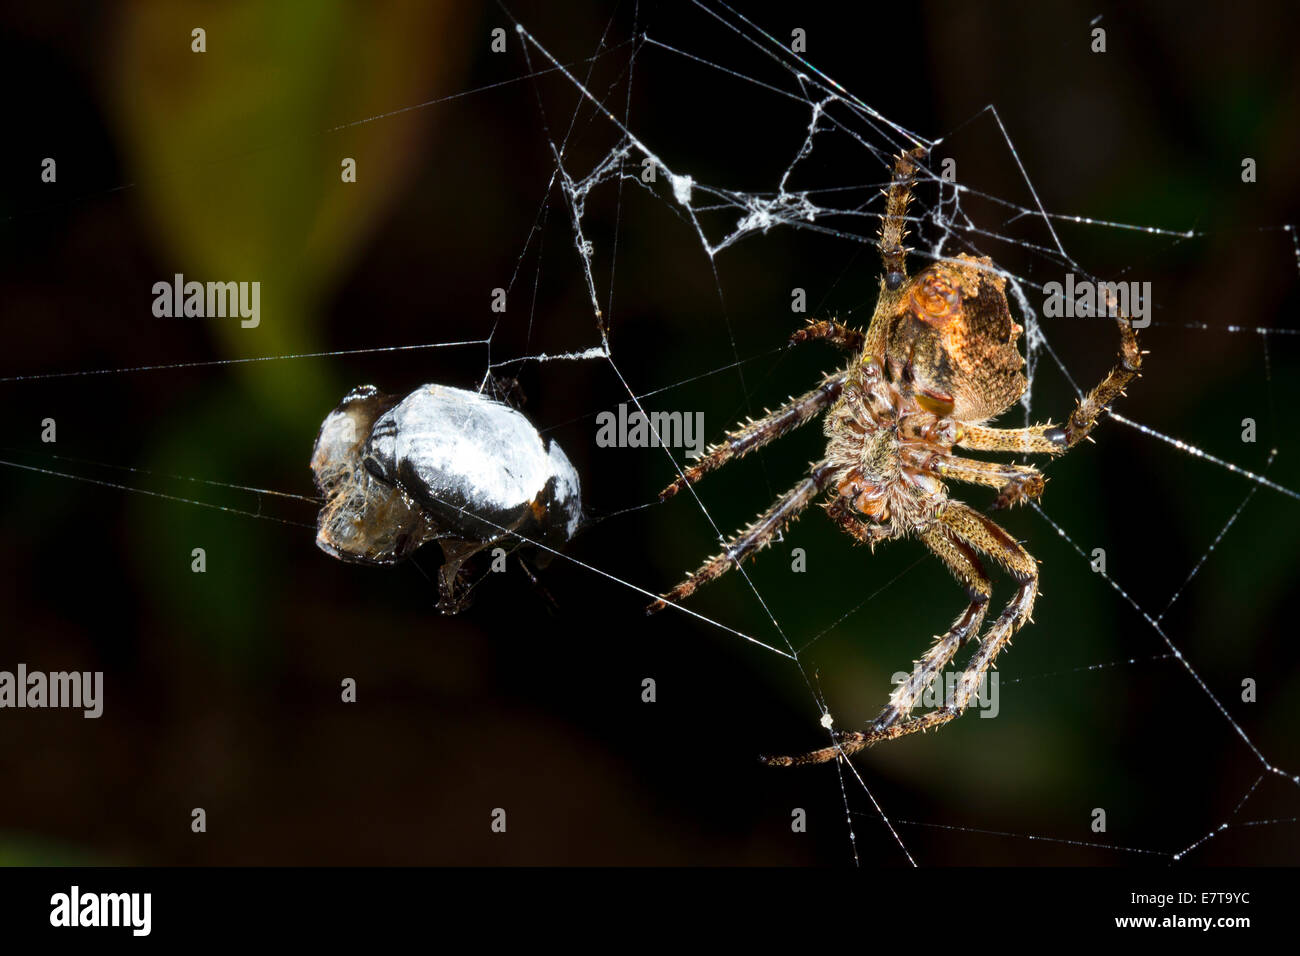 Large orb-web spider with a prey item in its web, Ecuador - Stock Image